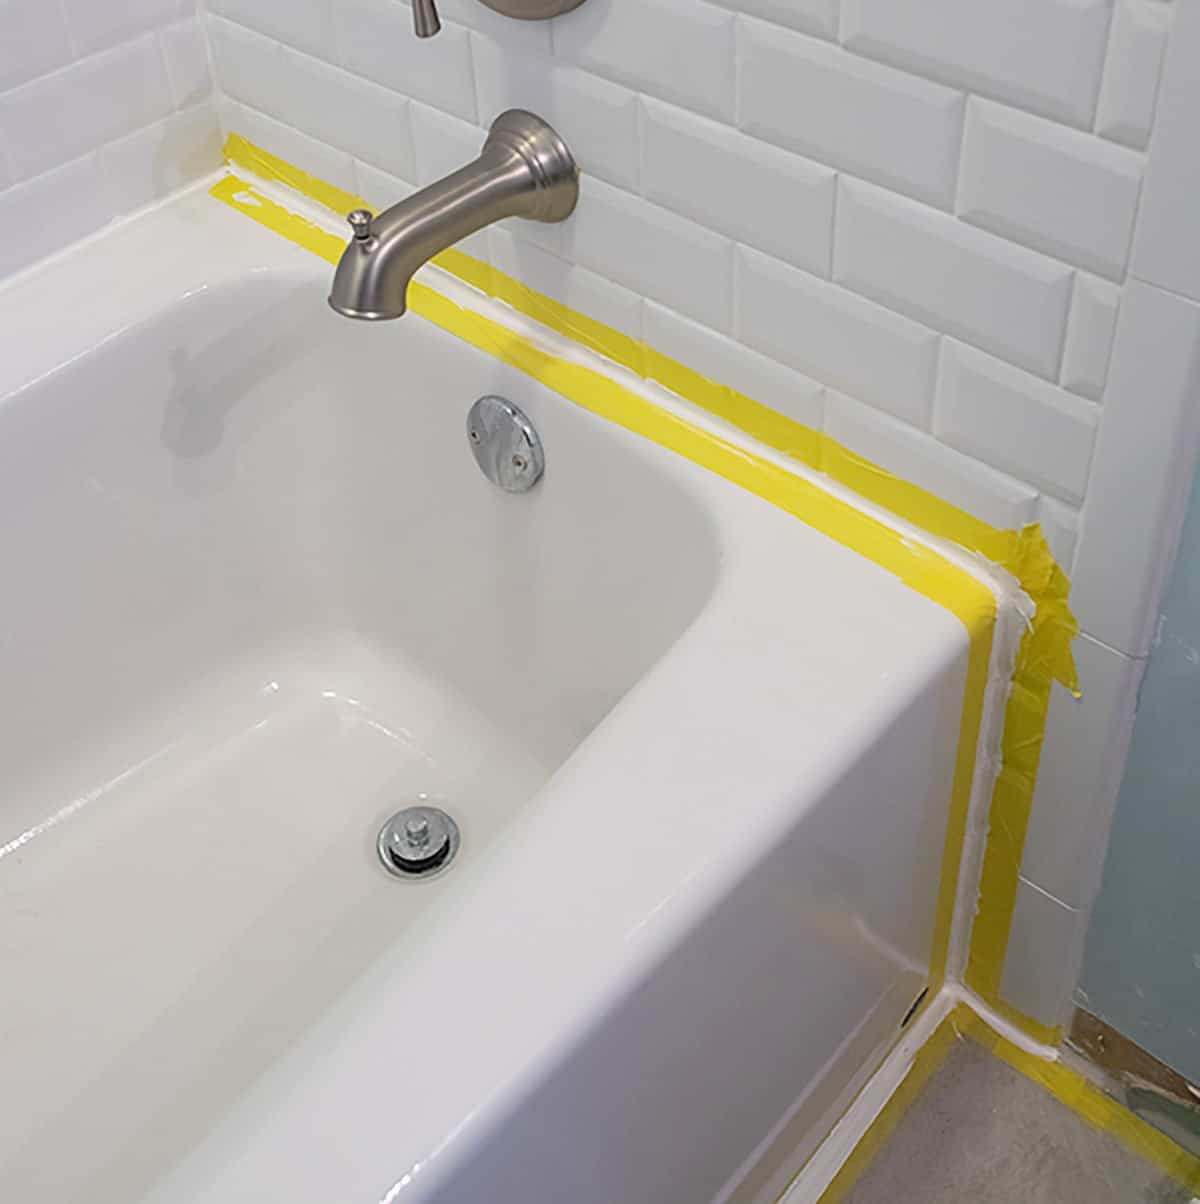 Taping both sides of a tub example for caulking a bathtub